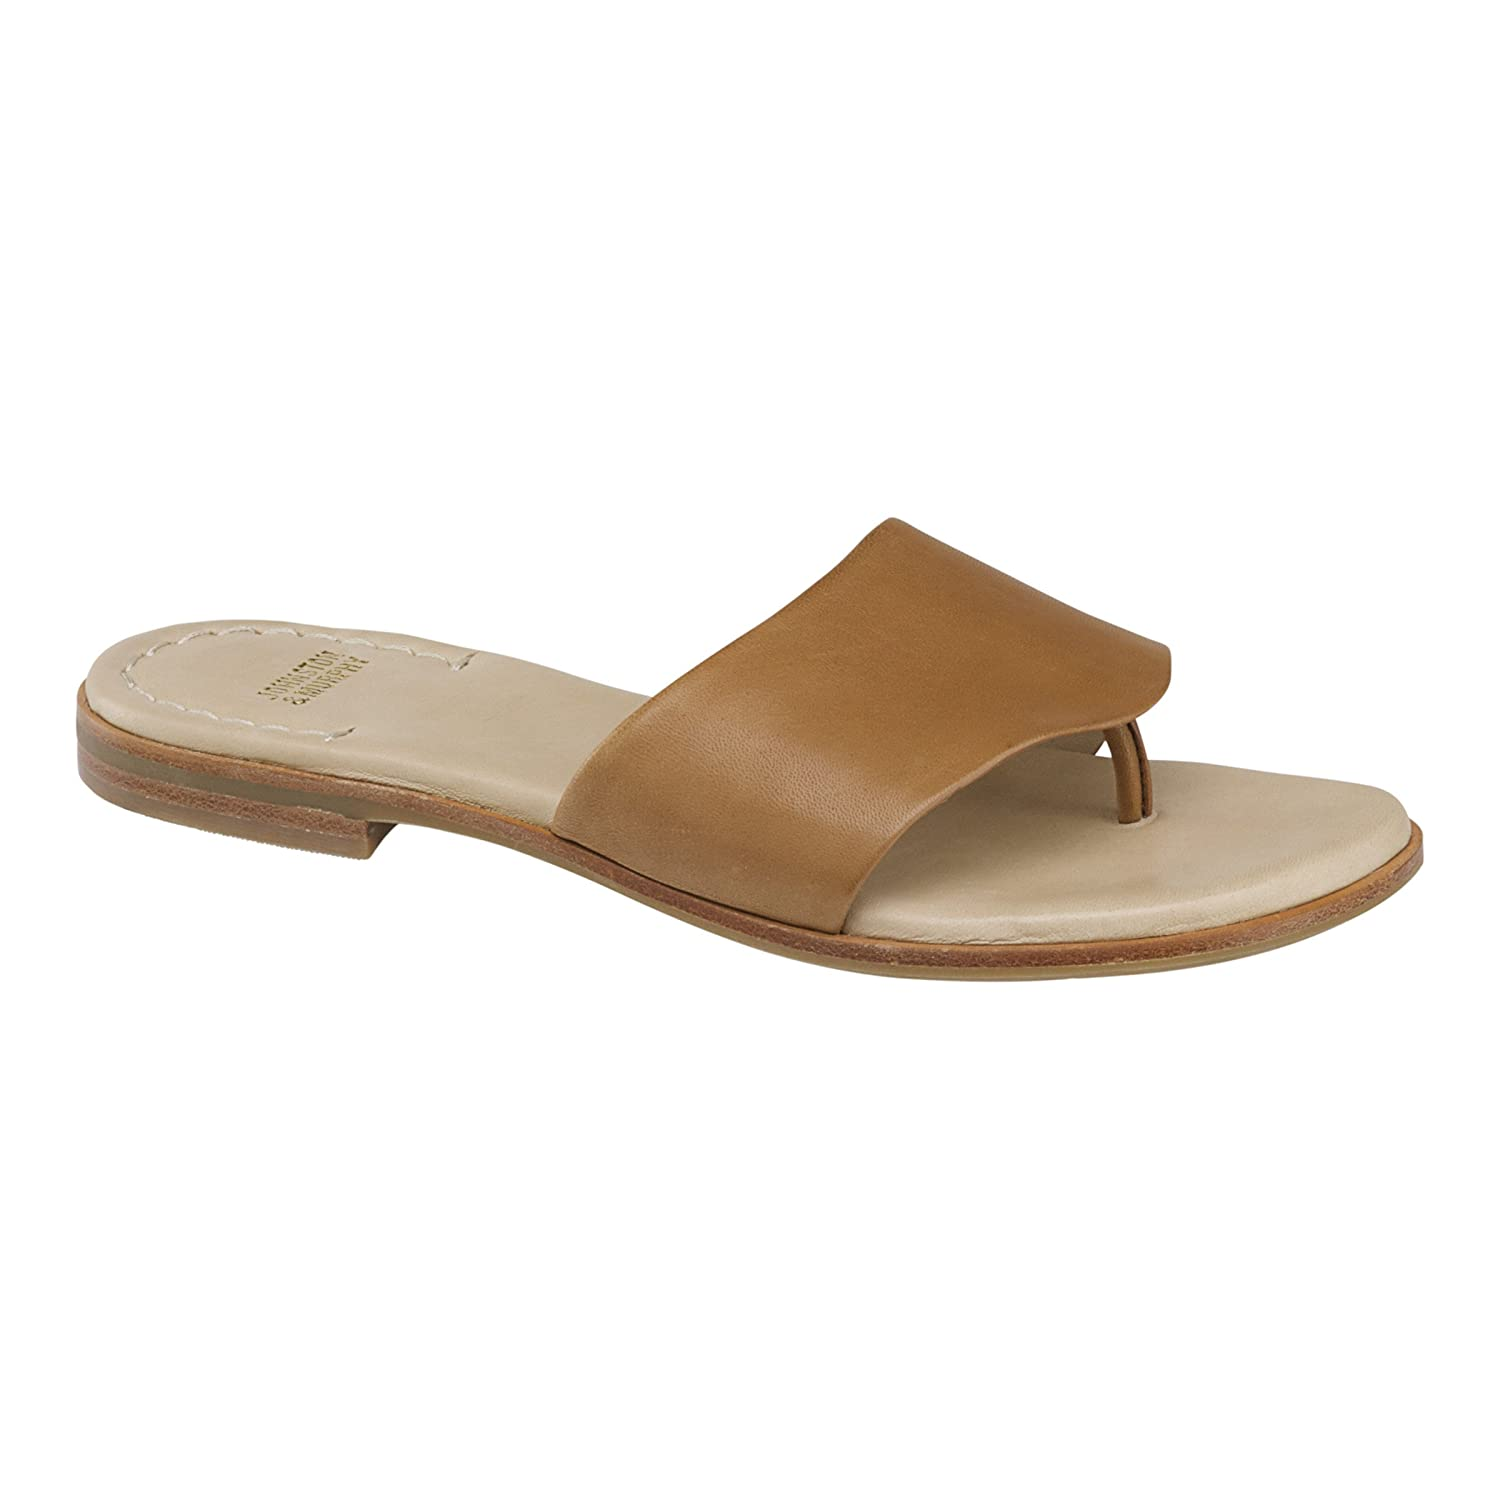 Johnston & Murphy Women's Raney Camel Flat Sandal B079TZKFVW 11 B(M) US|Camel Glove Leather